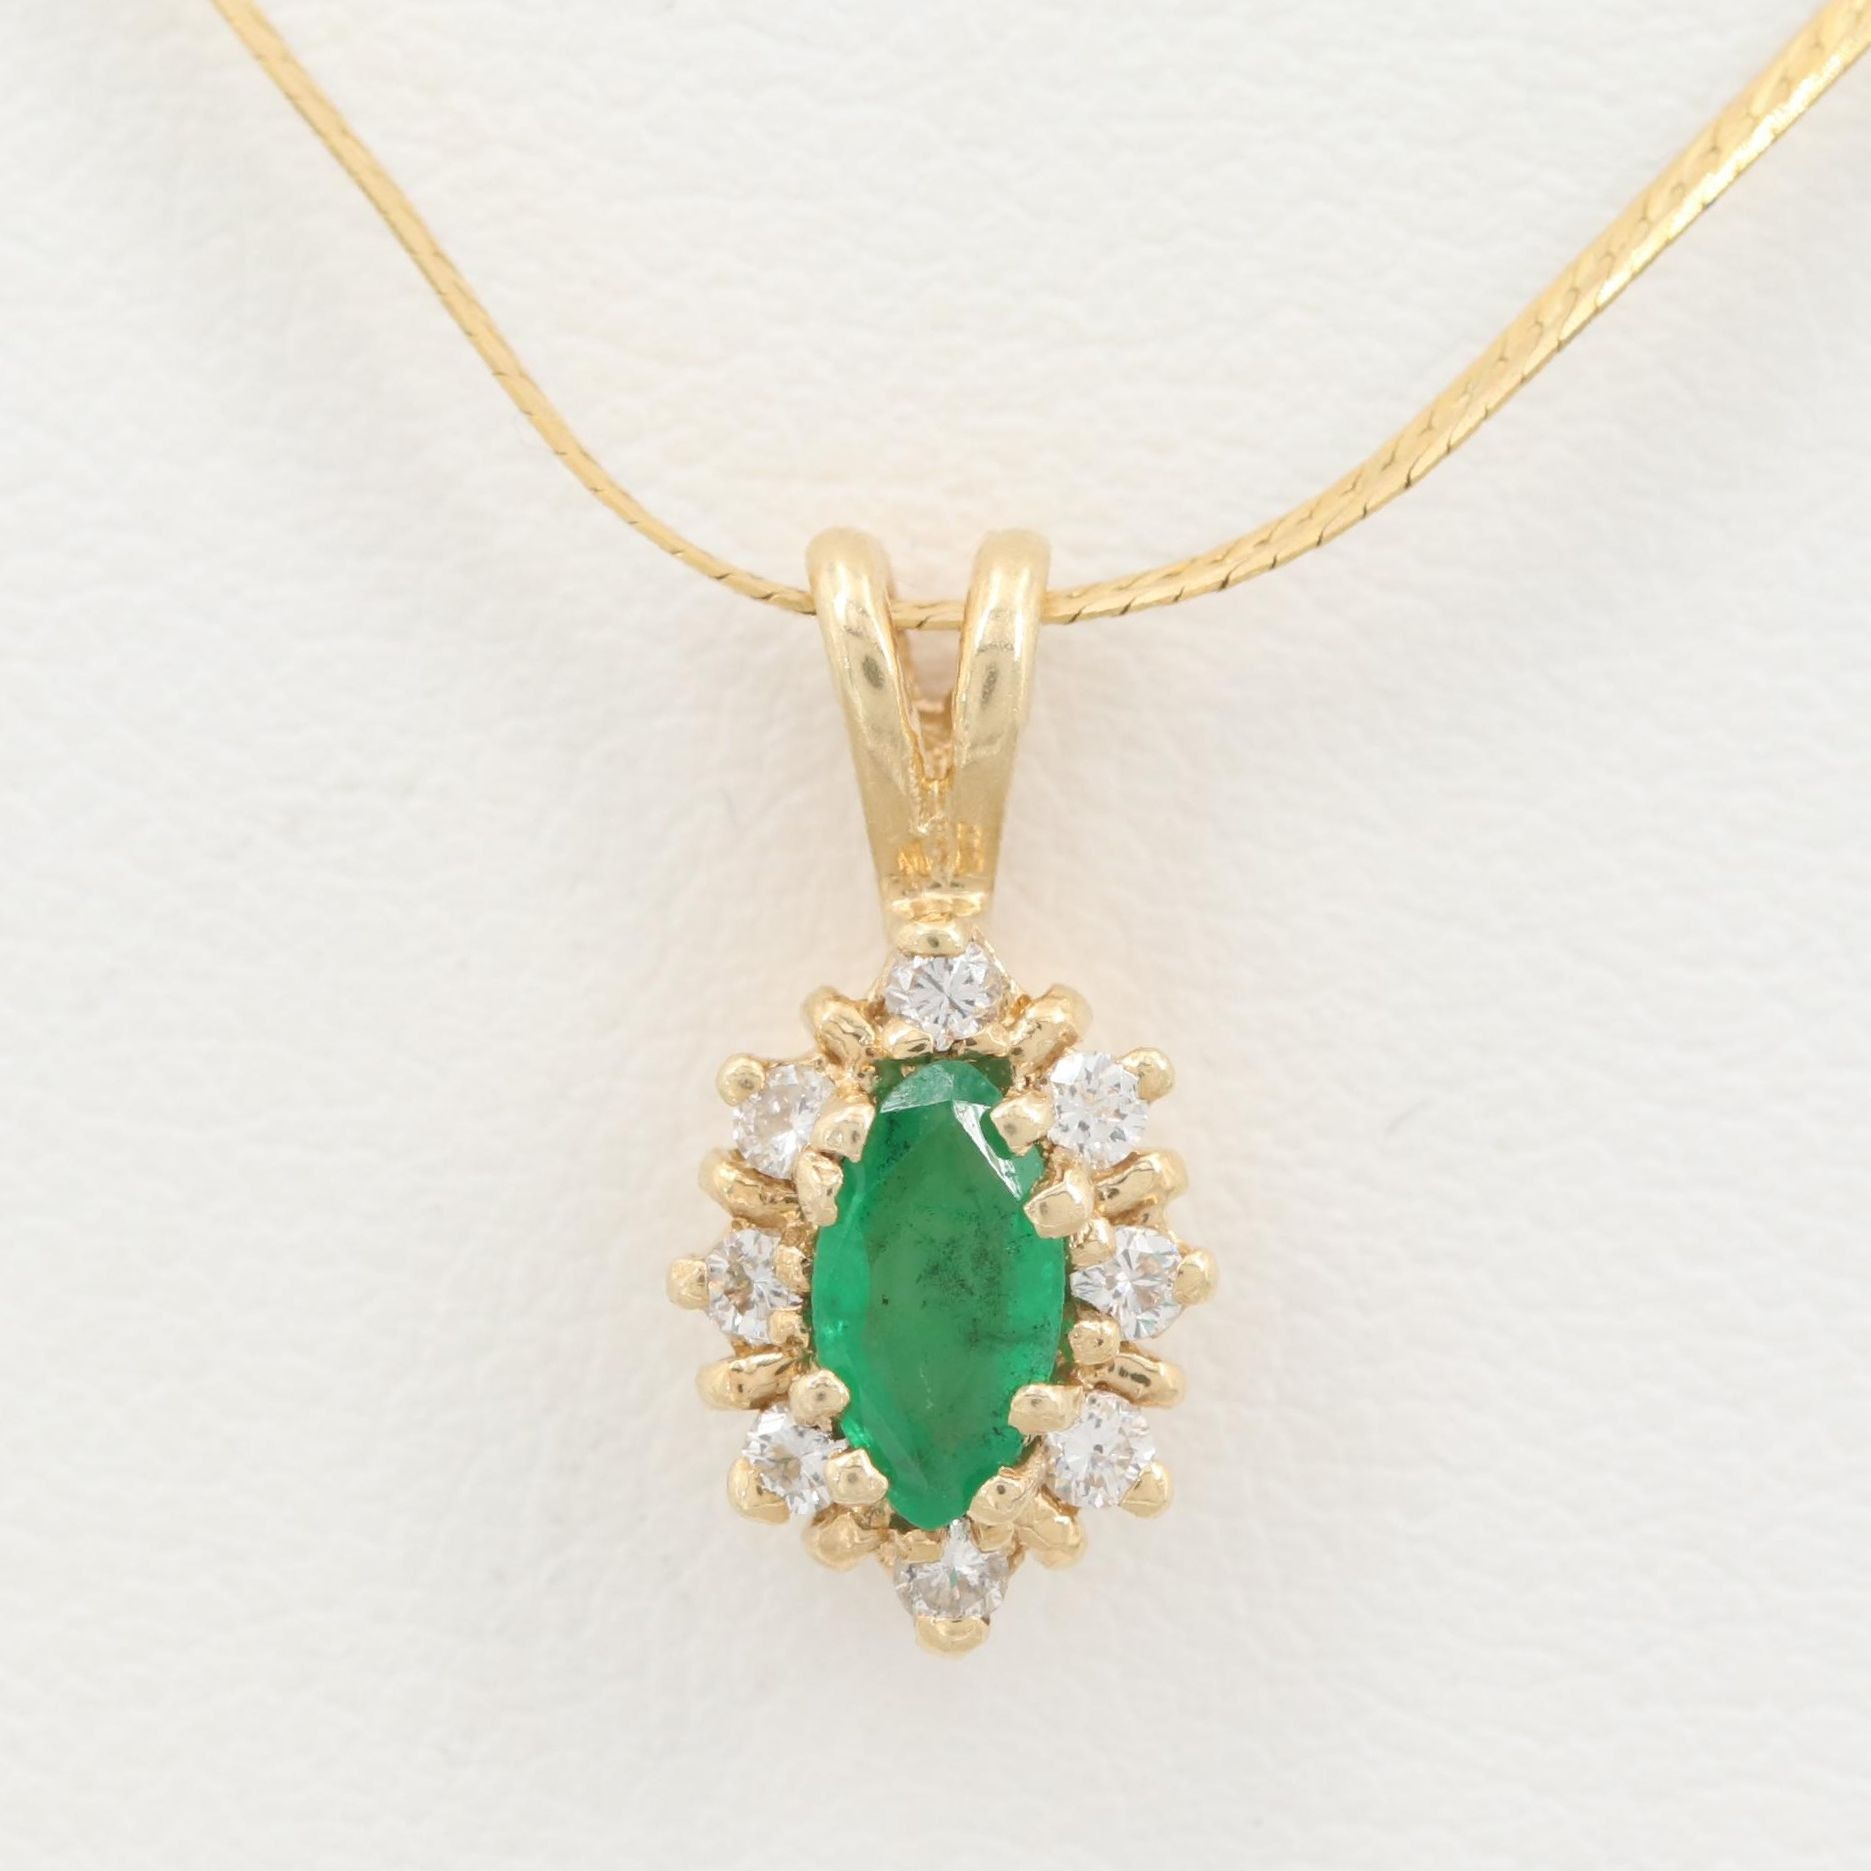 14K Yellow Gold Emerald and Diamond Pendant Necklace